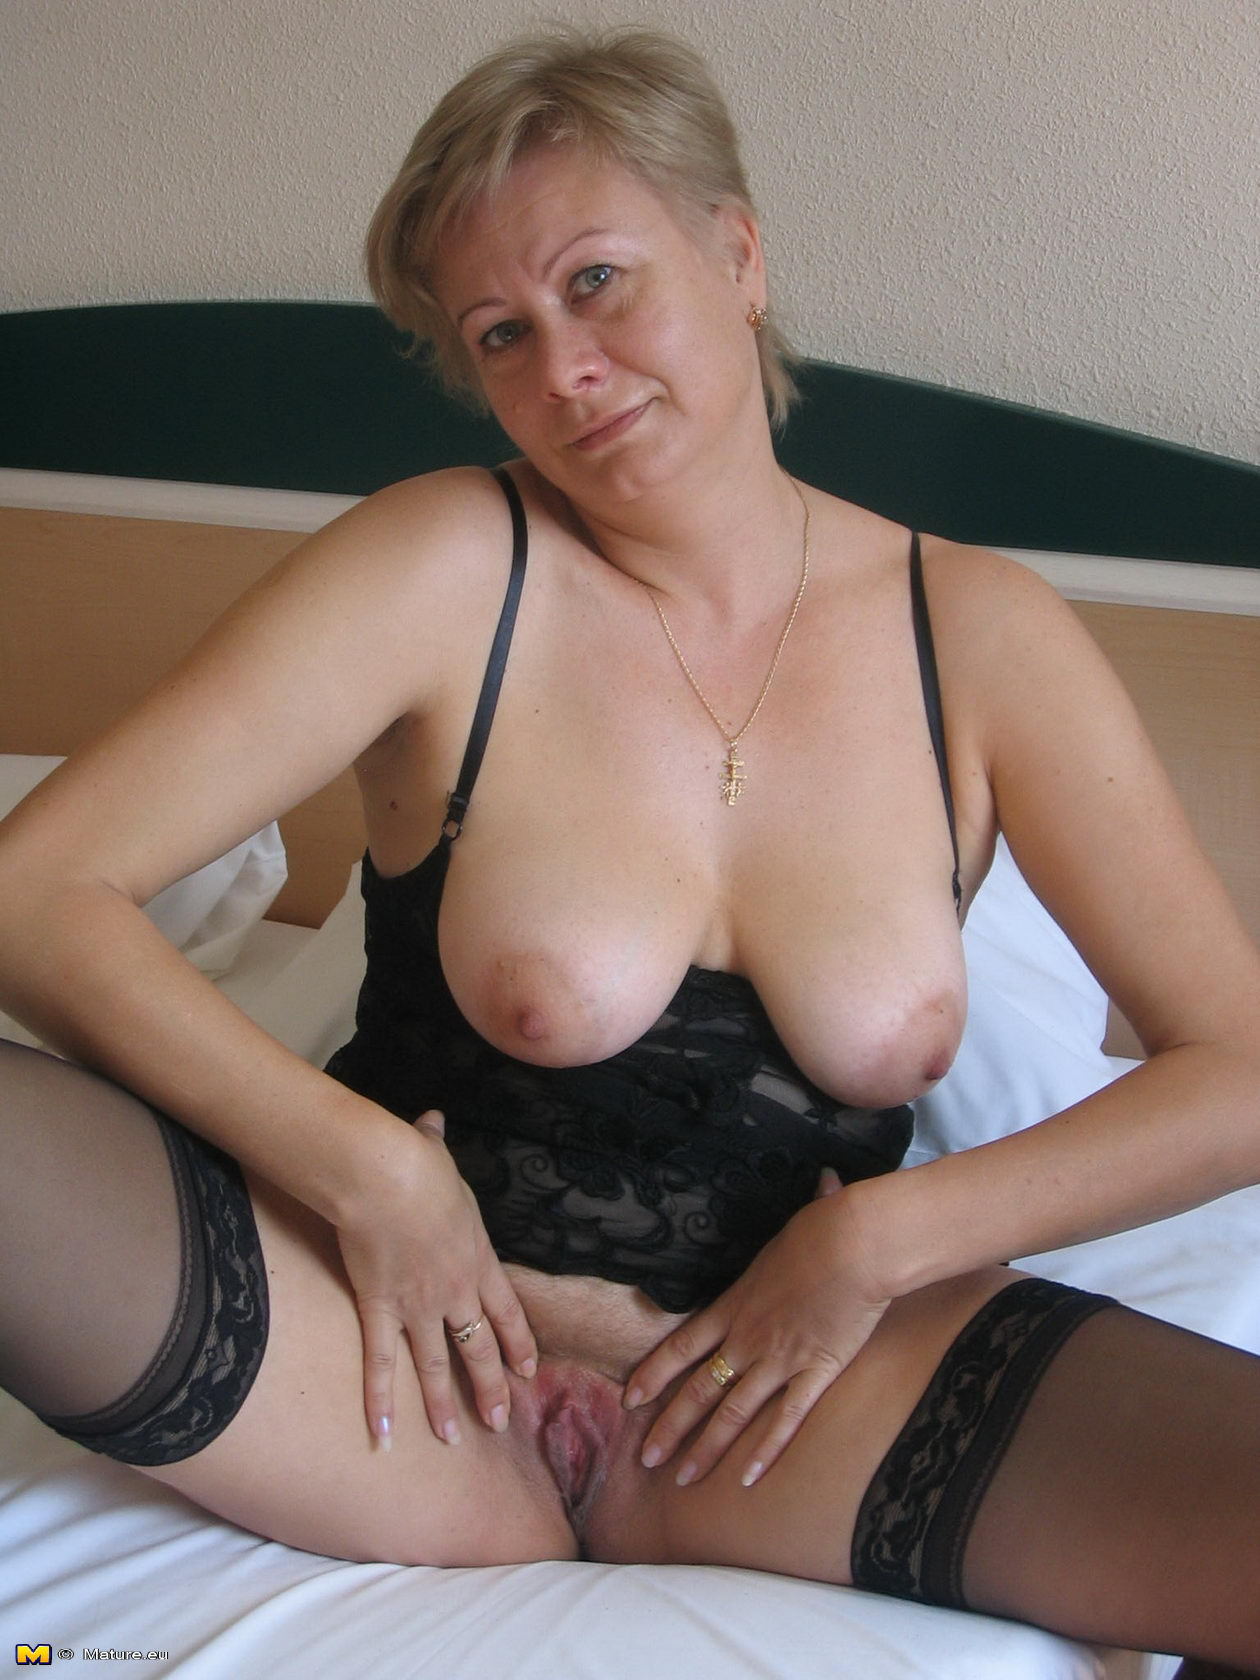 Older granny erotic porn older granny lady erotic photos